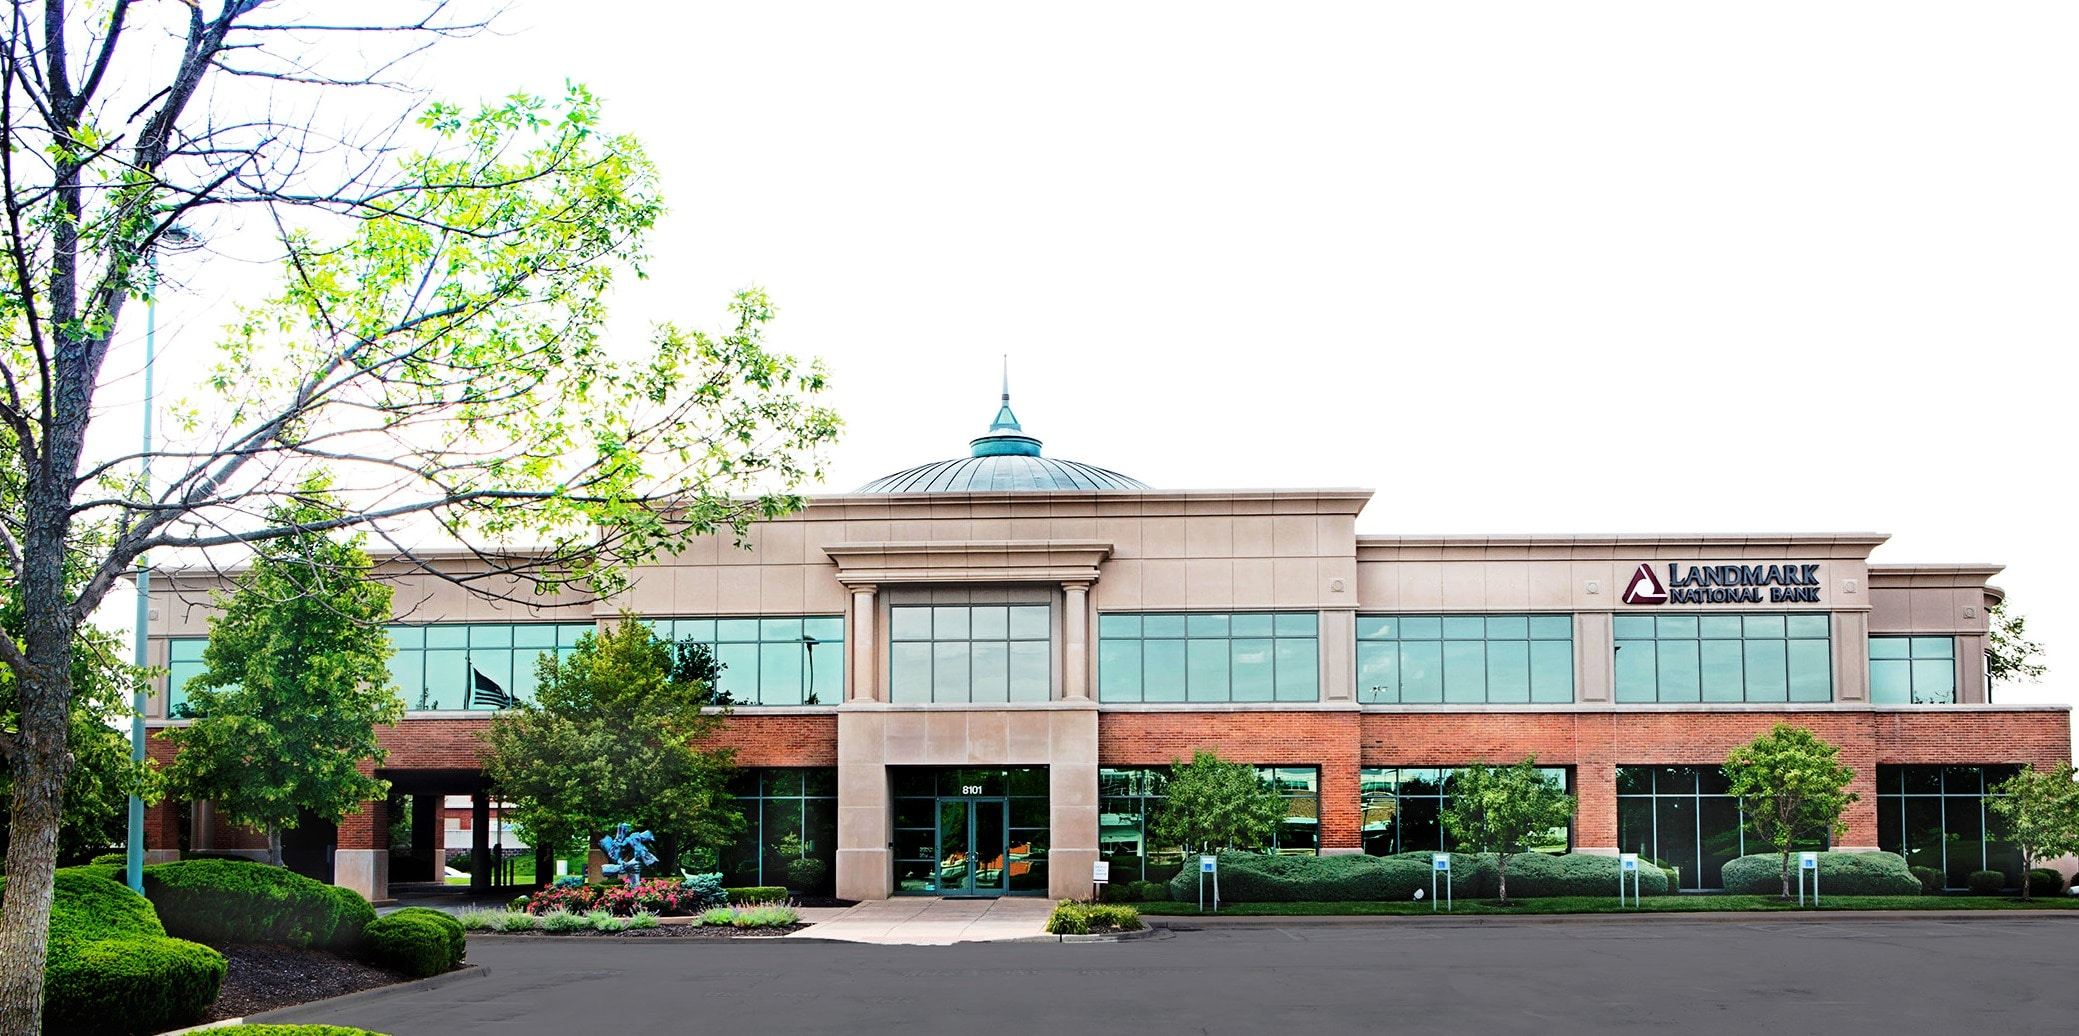 View of Overland Park bank building